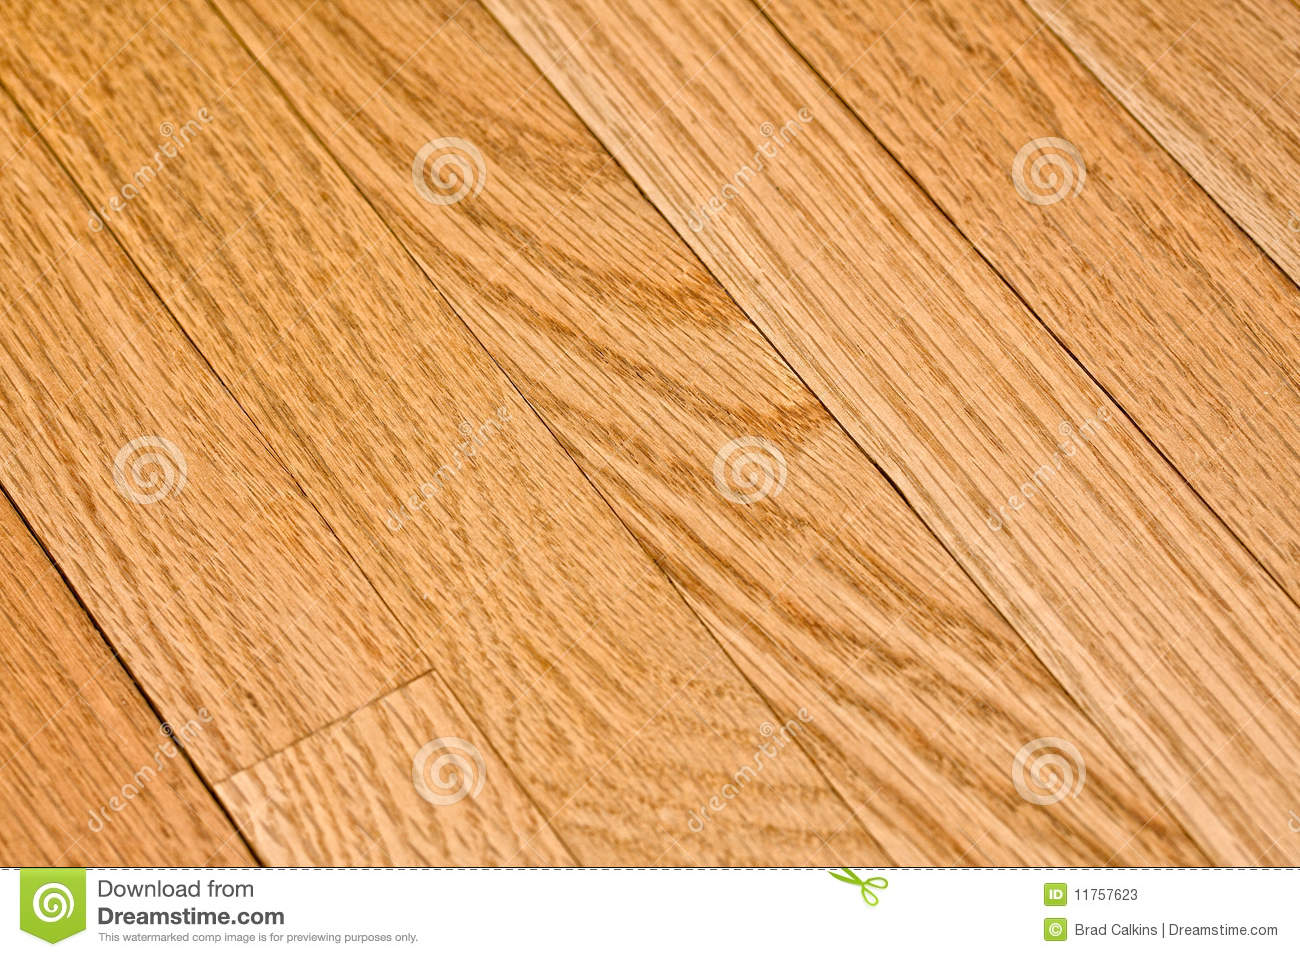 Oak Floor Stock Photos Image 11757623: unstained hardwood floors